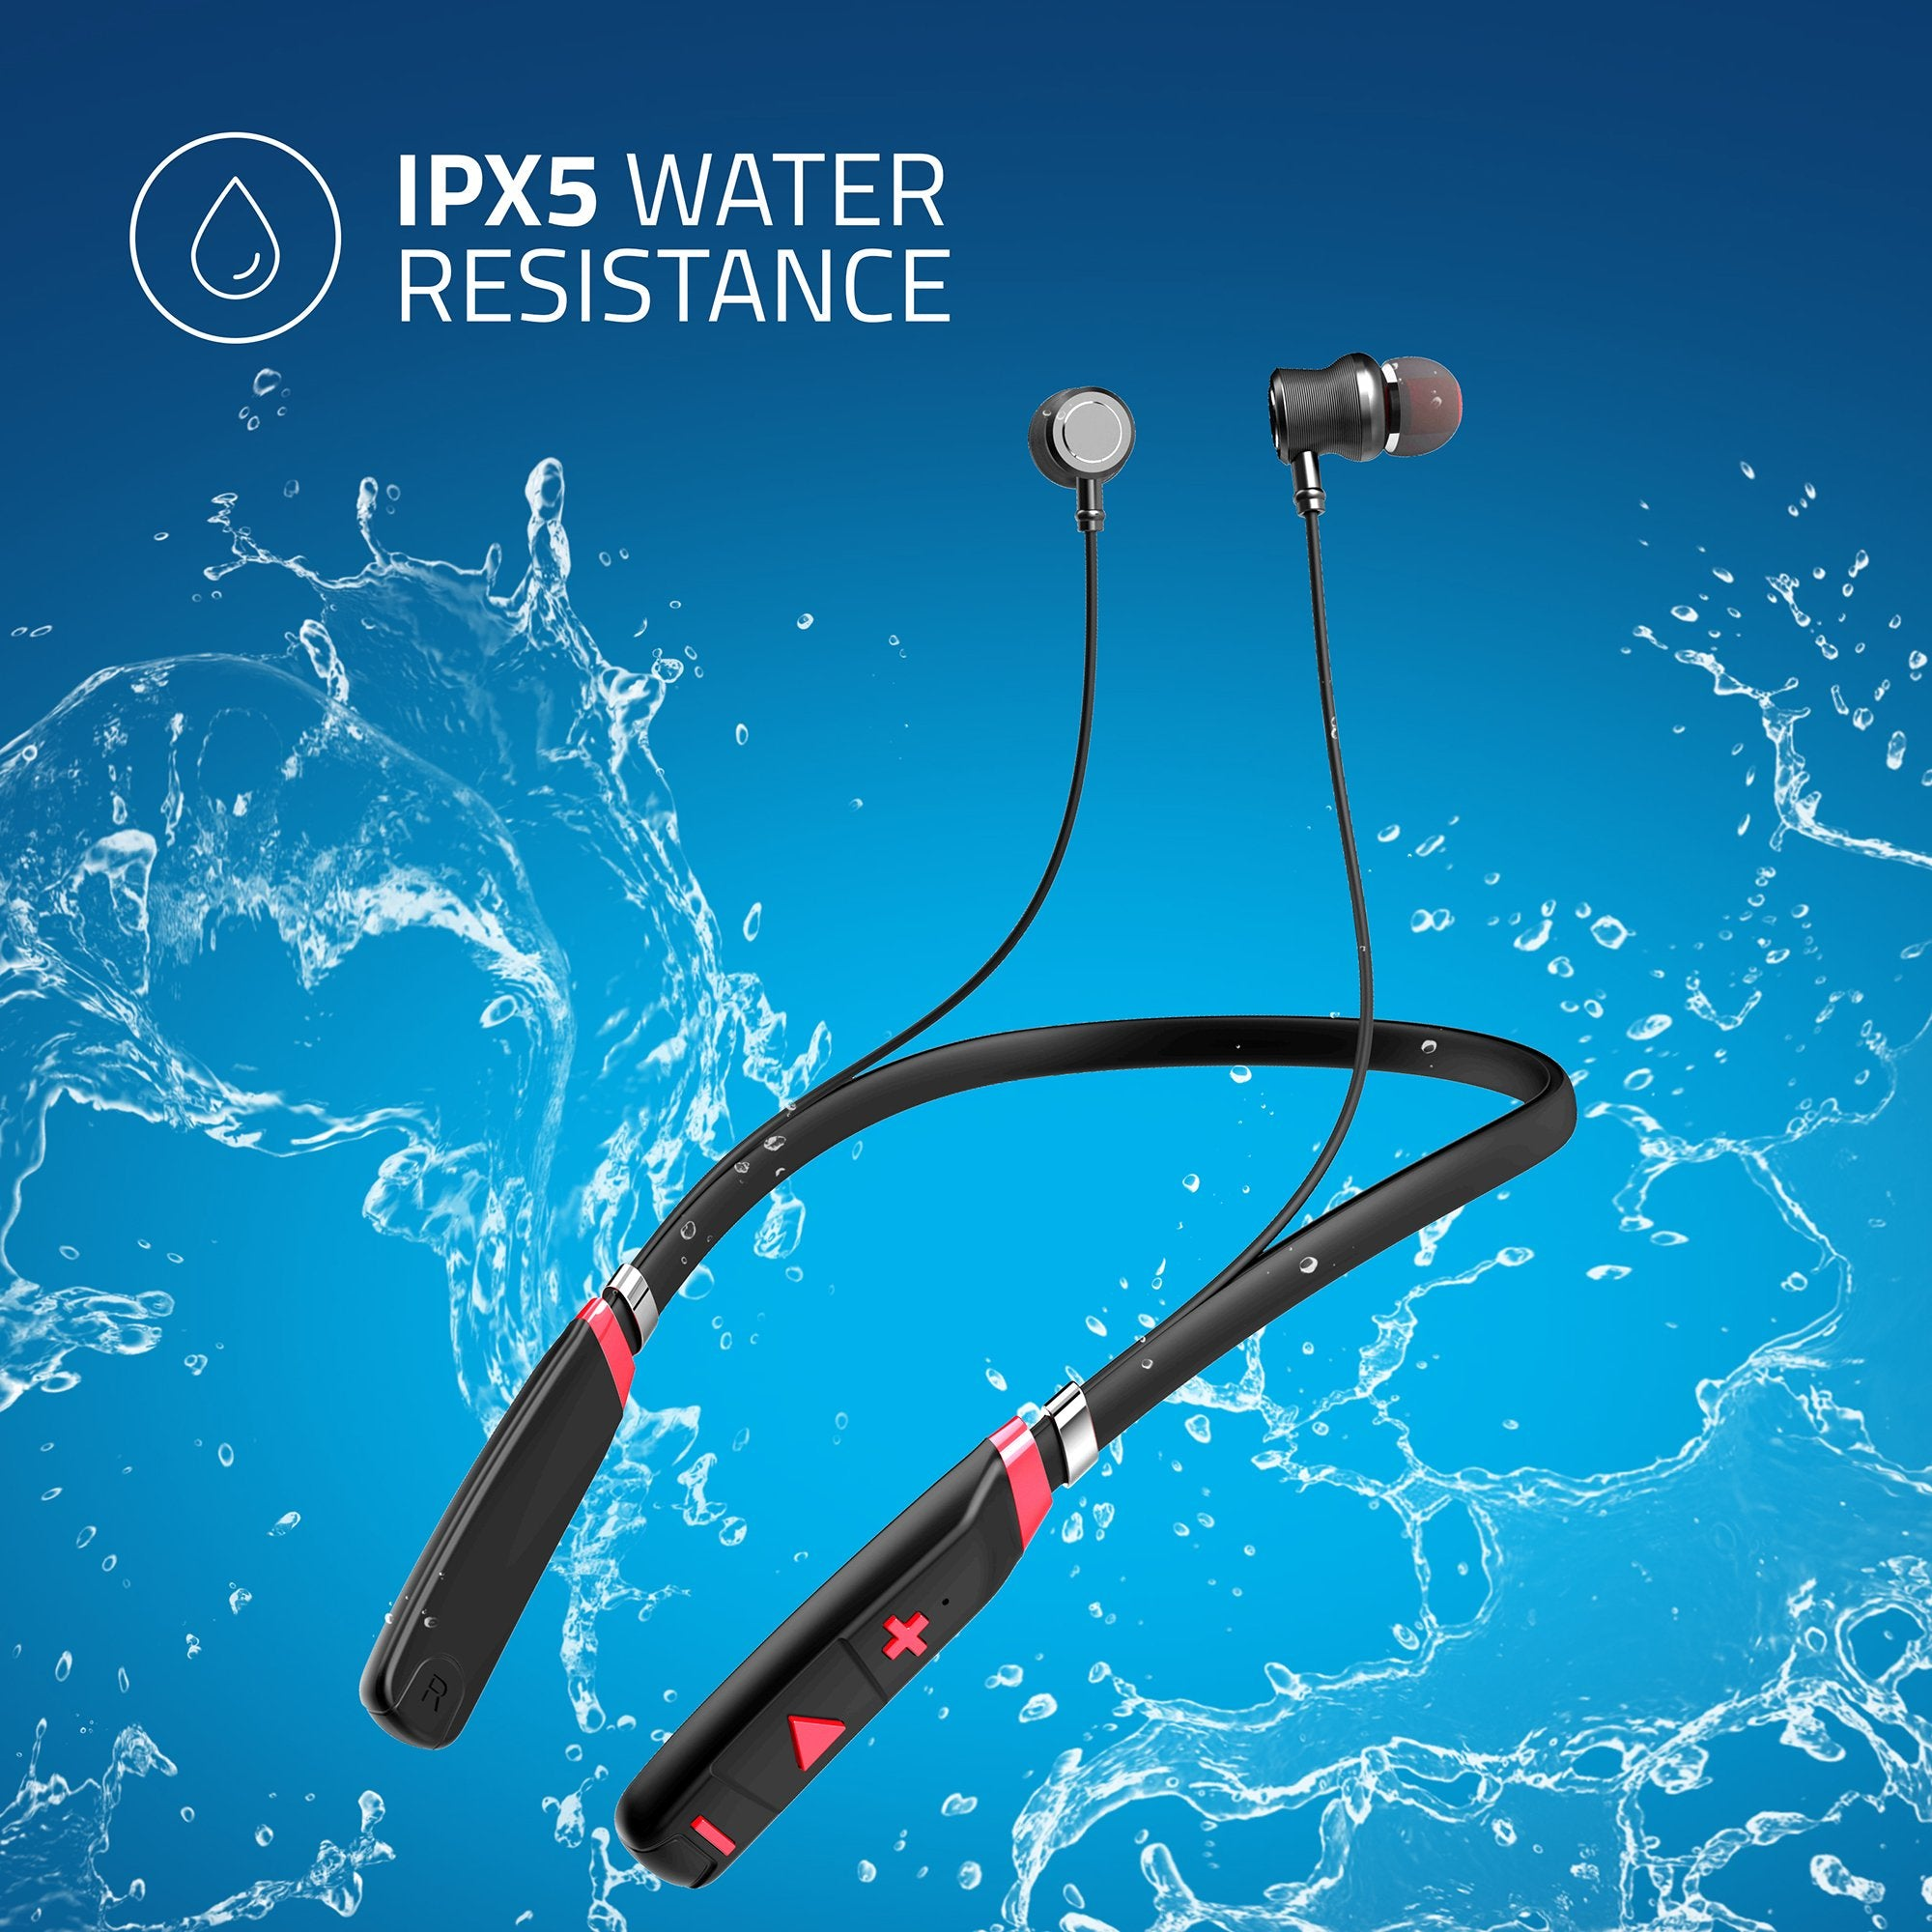 Artis BE910M Sports Bluetooth Wireless Neckband Earphone - IPX5 Certified For Water Resistance